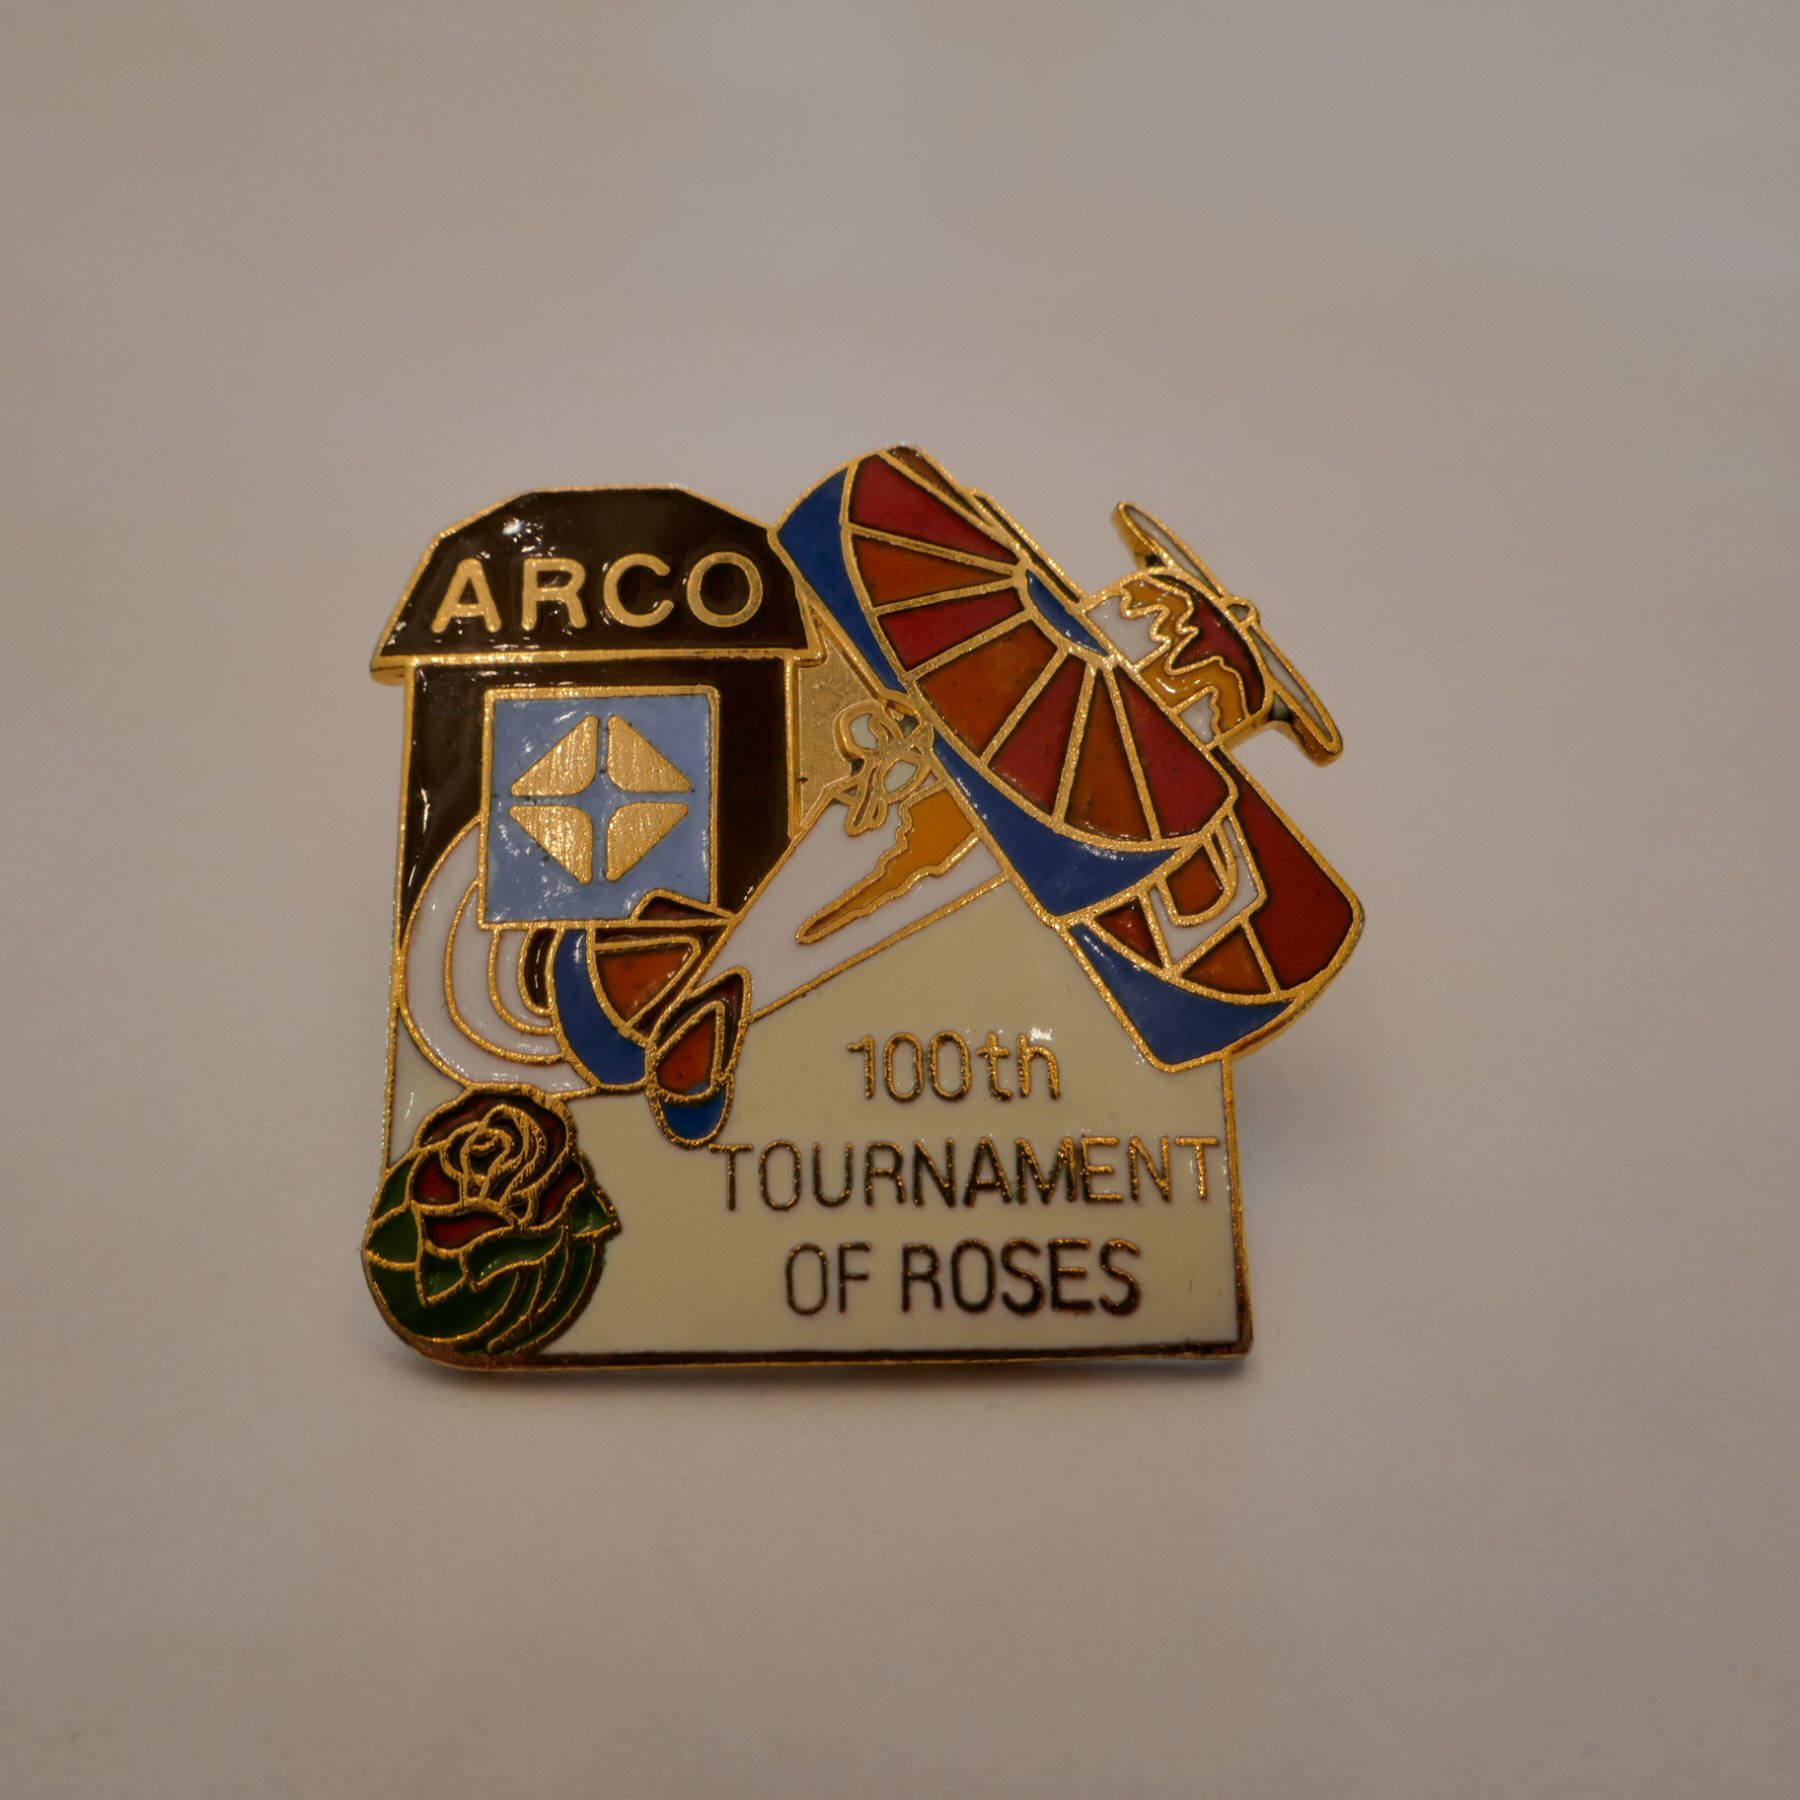 ARCO 100th TOURNAMENT OF ROSES pins